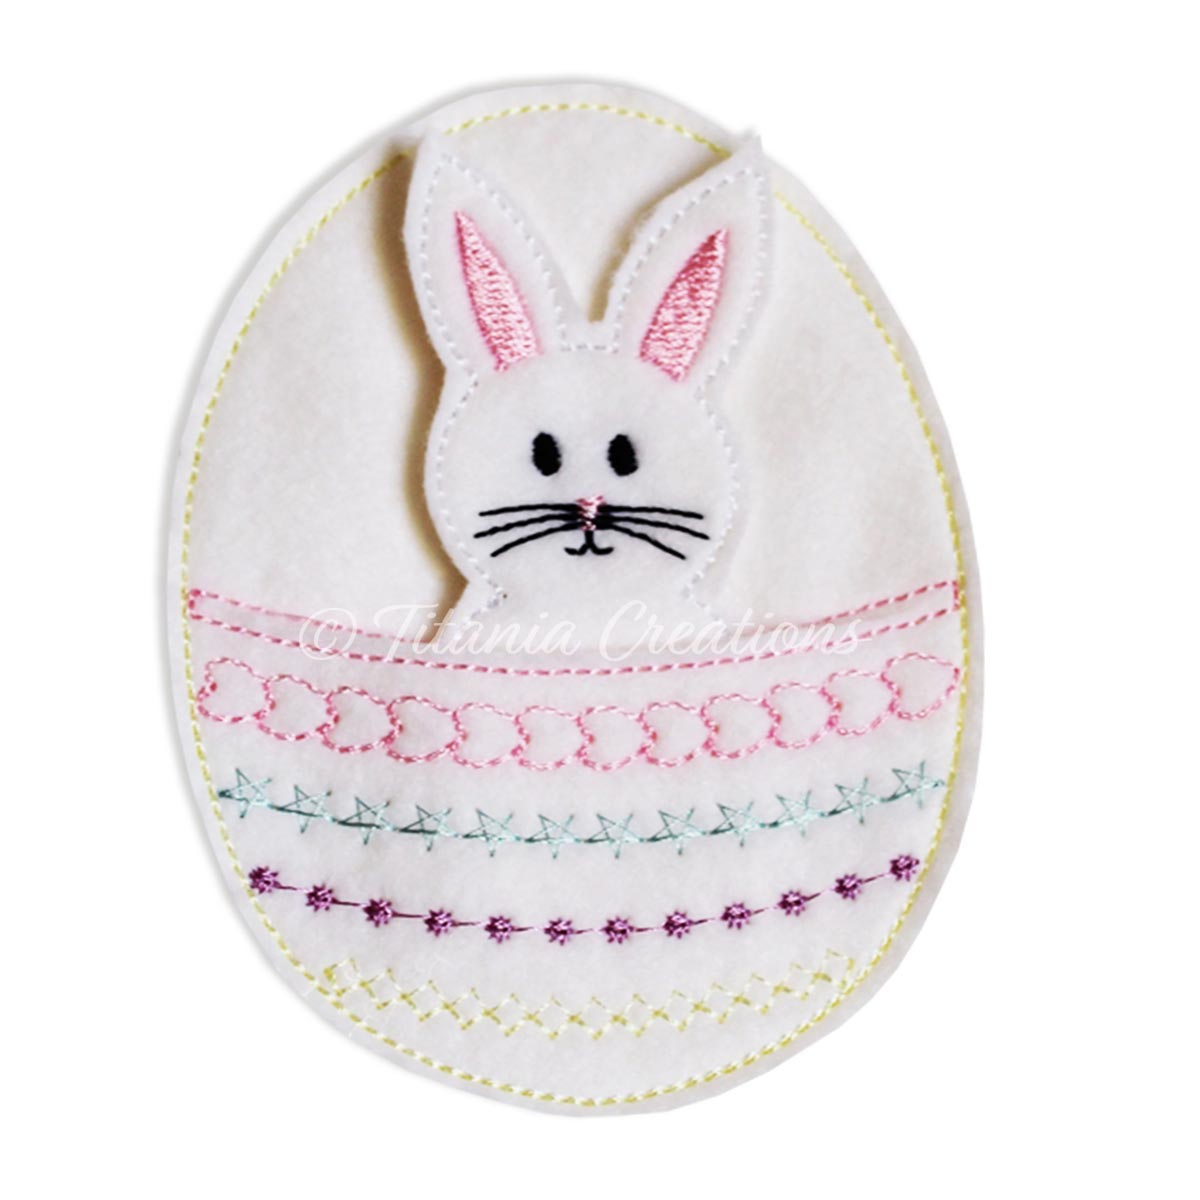 ITH Easter Egg Bunny Treat Bag 4x4